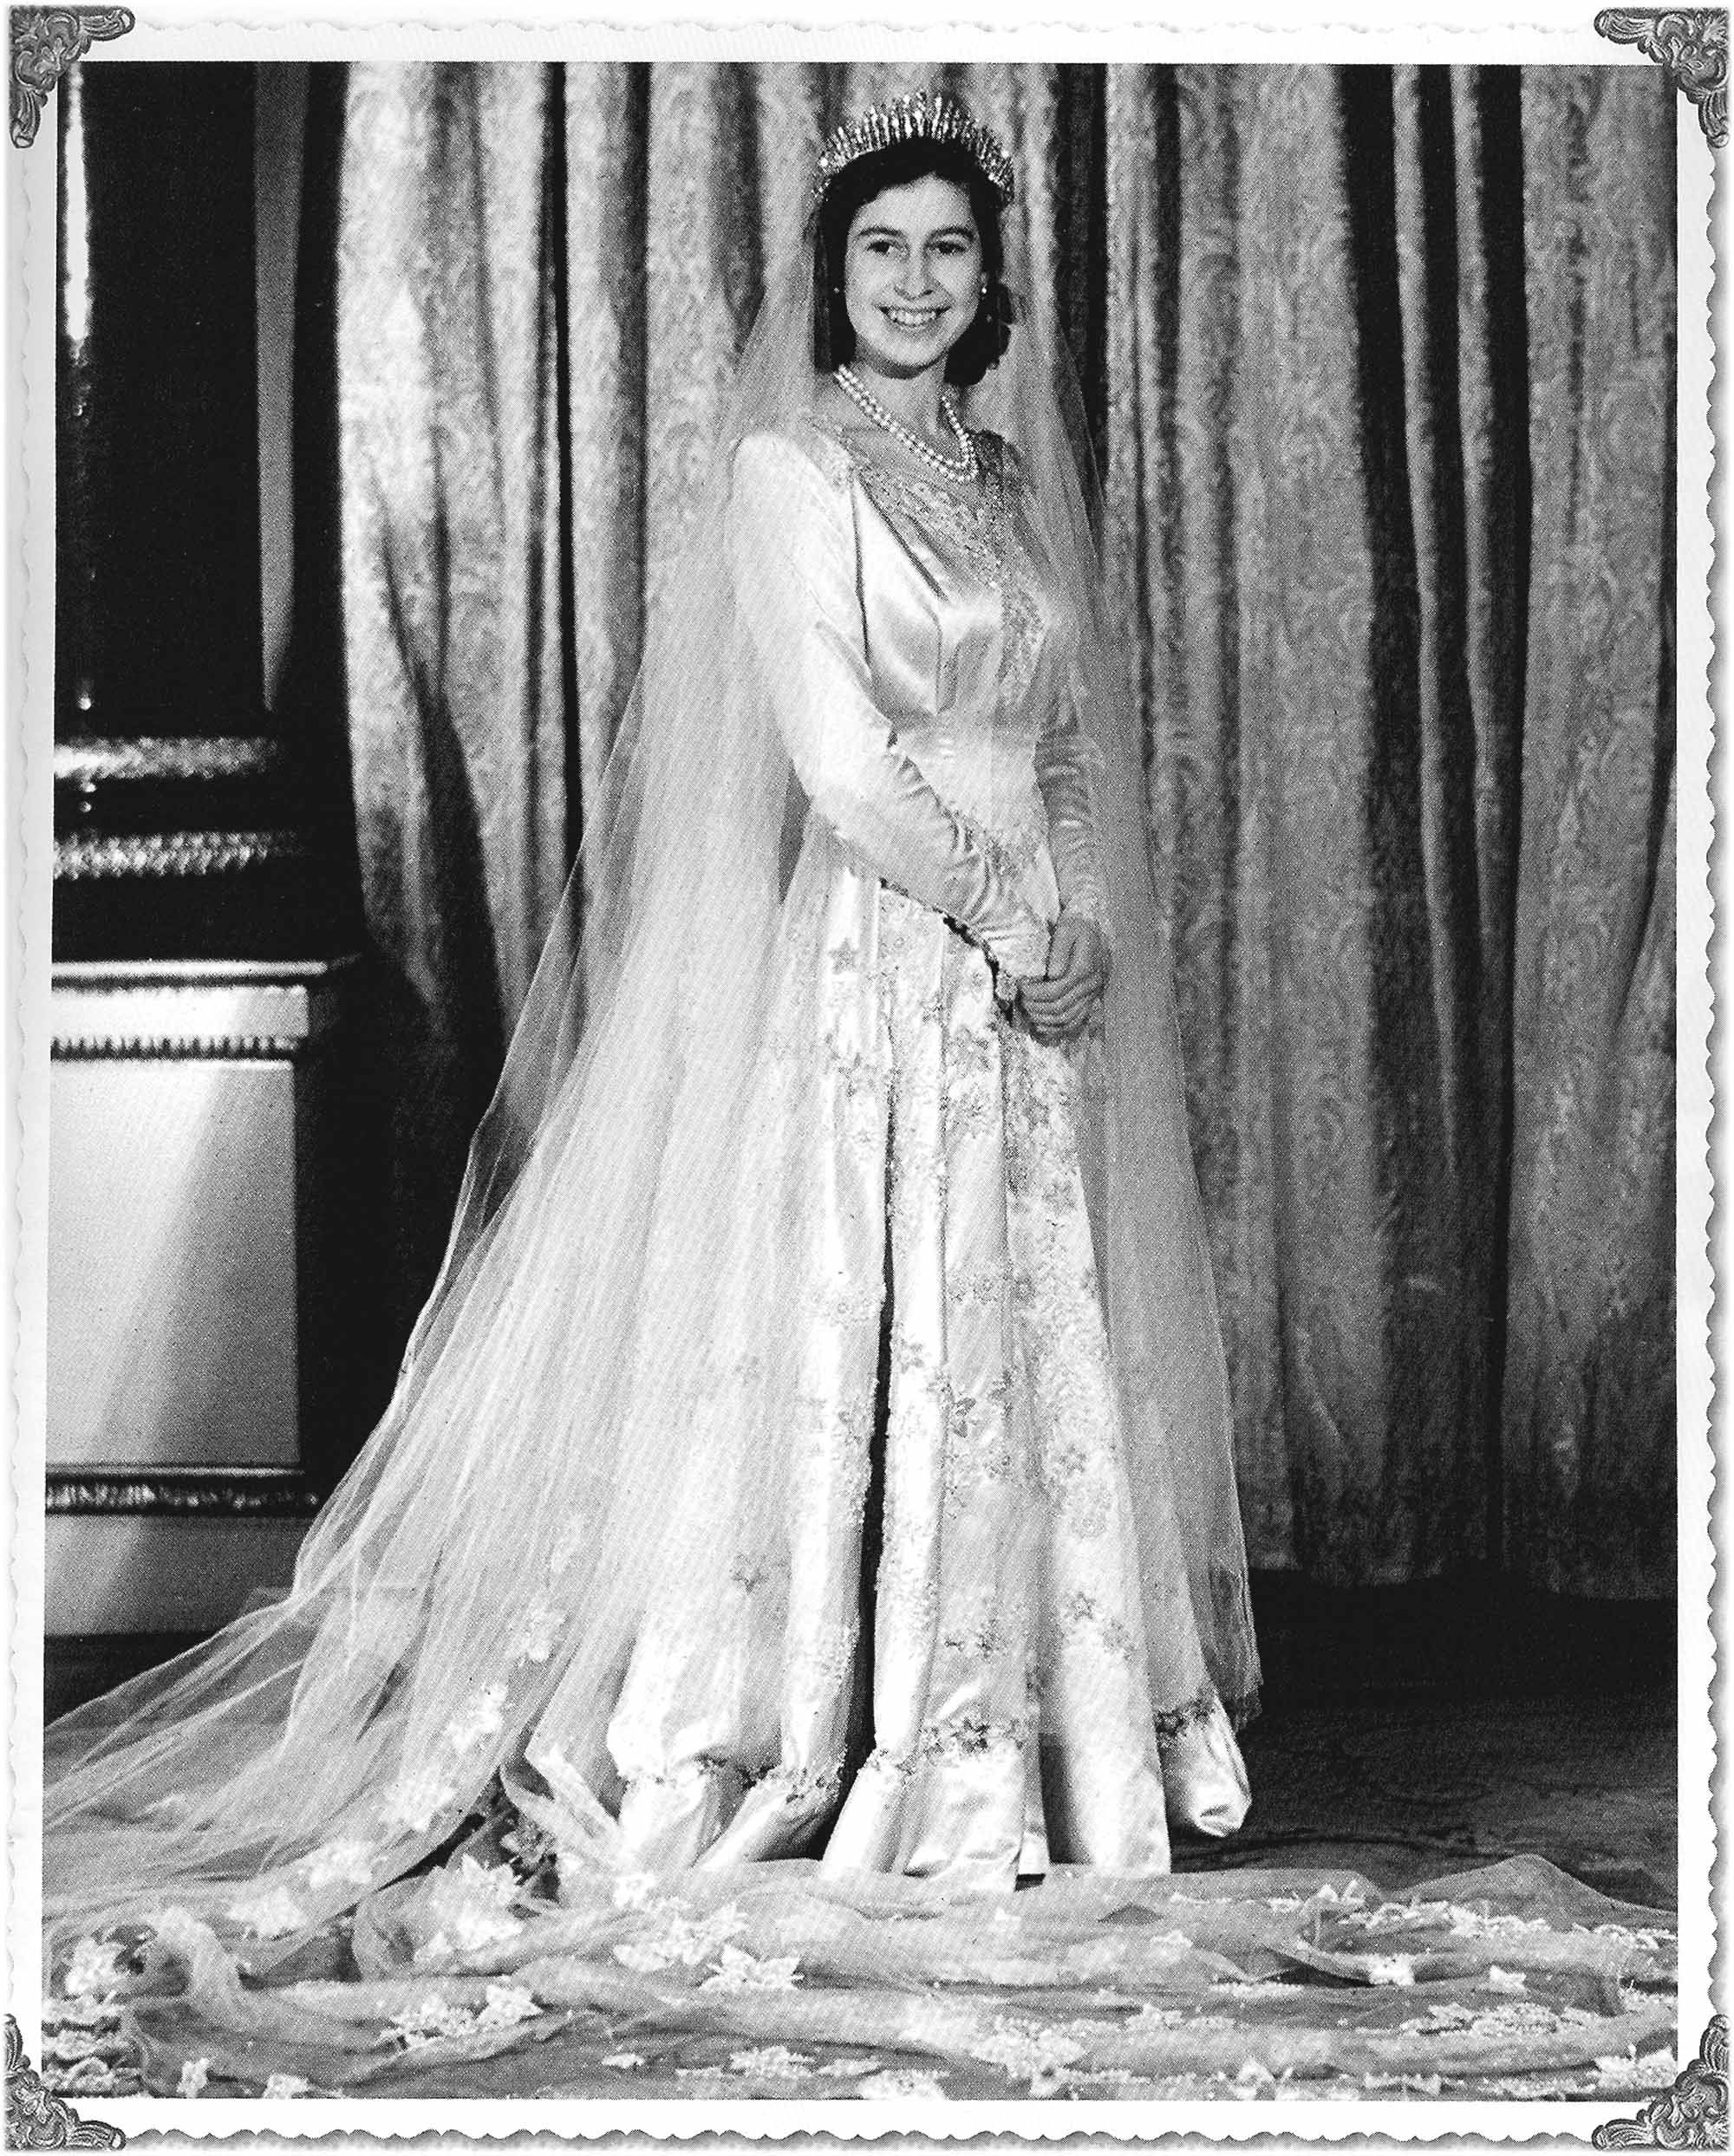 Queen Elizabeth on her wedding day Nov. 20, 1947. Gown by